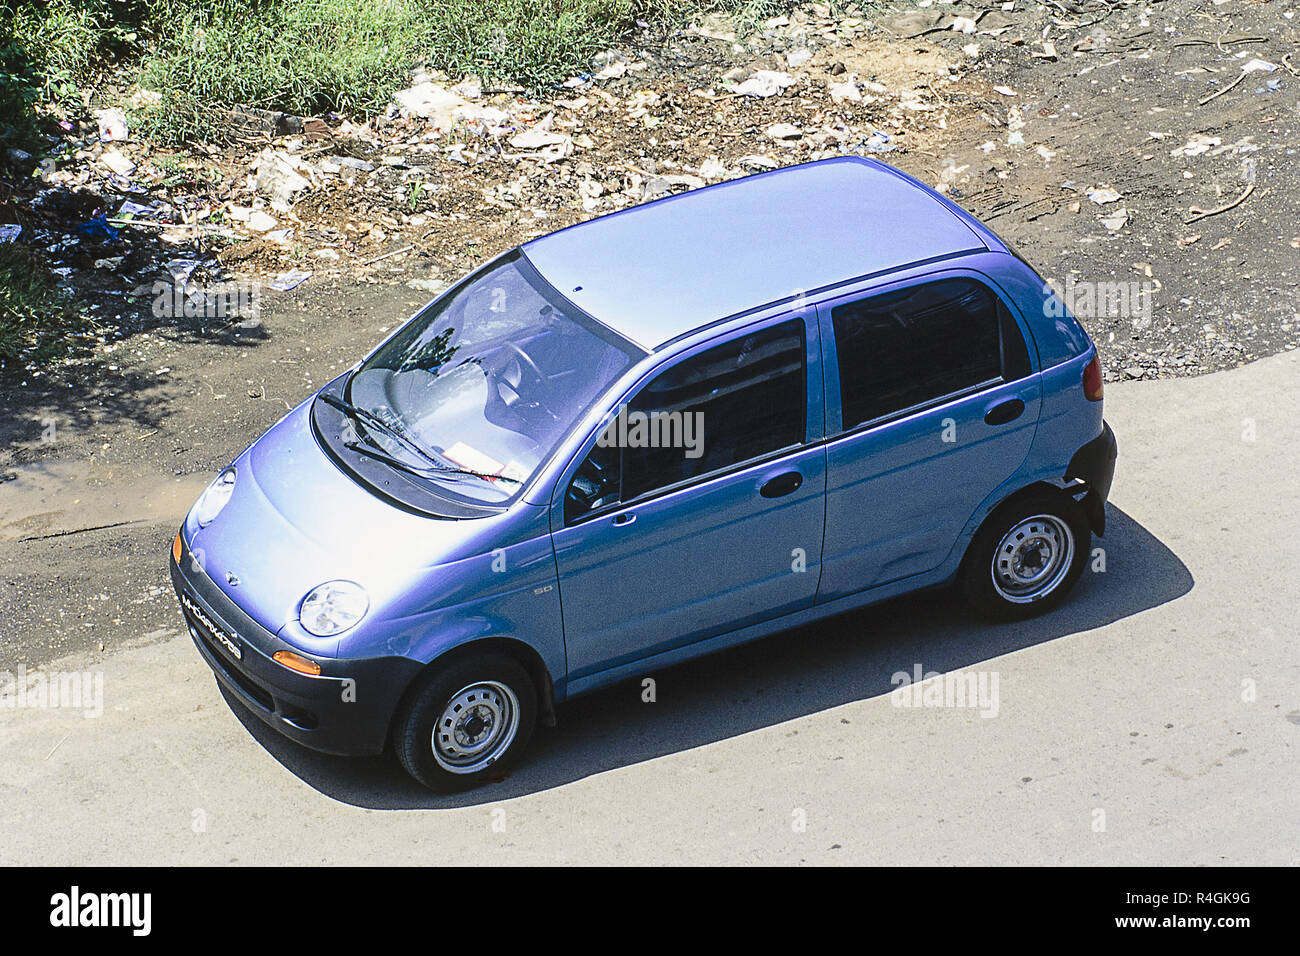 Daewoo High Resolution Stock Photography And Images Alamy